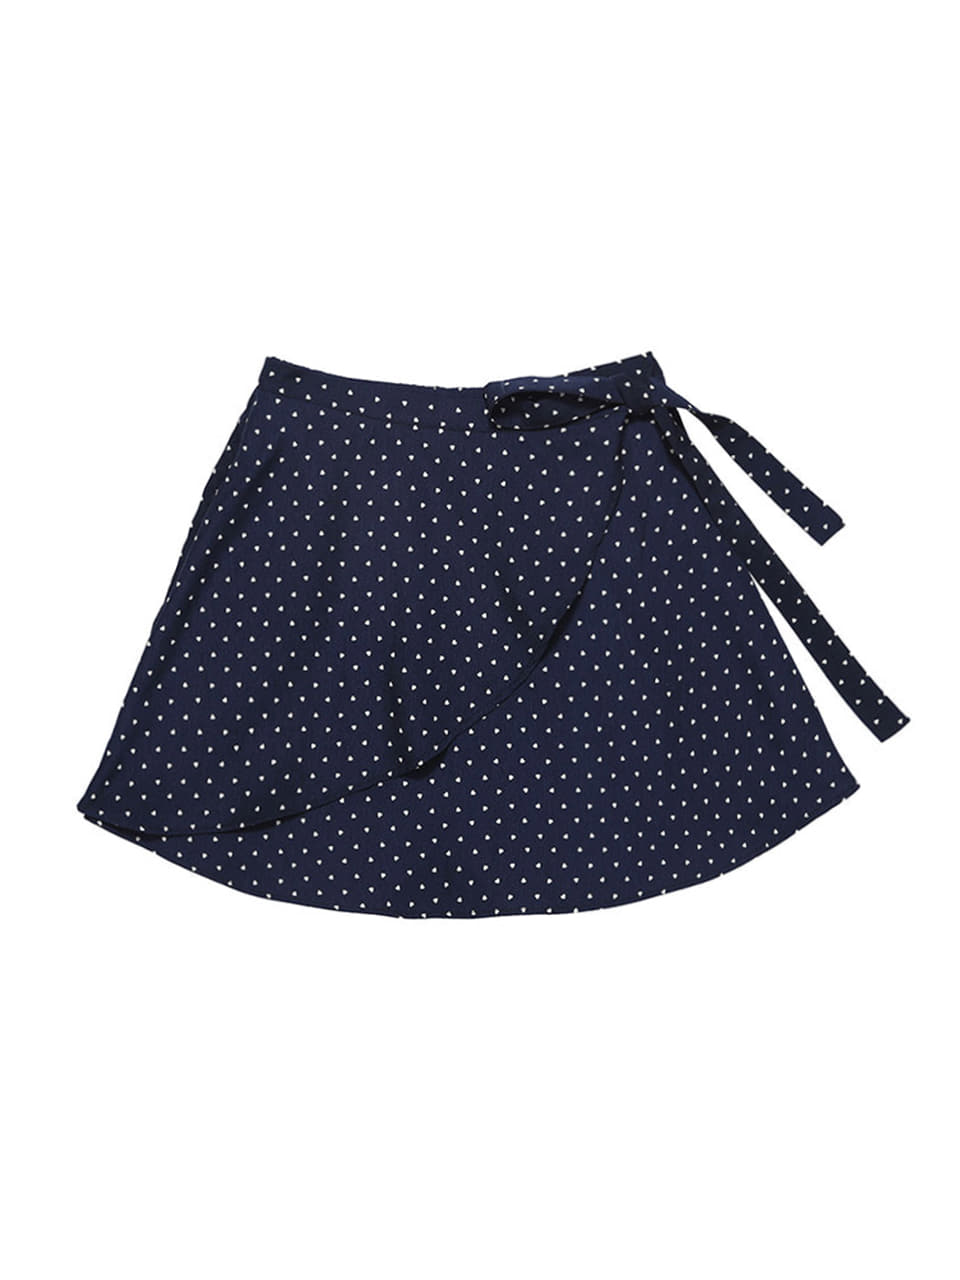 mgmg heart pattern wrap skirt_navy